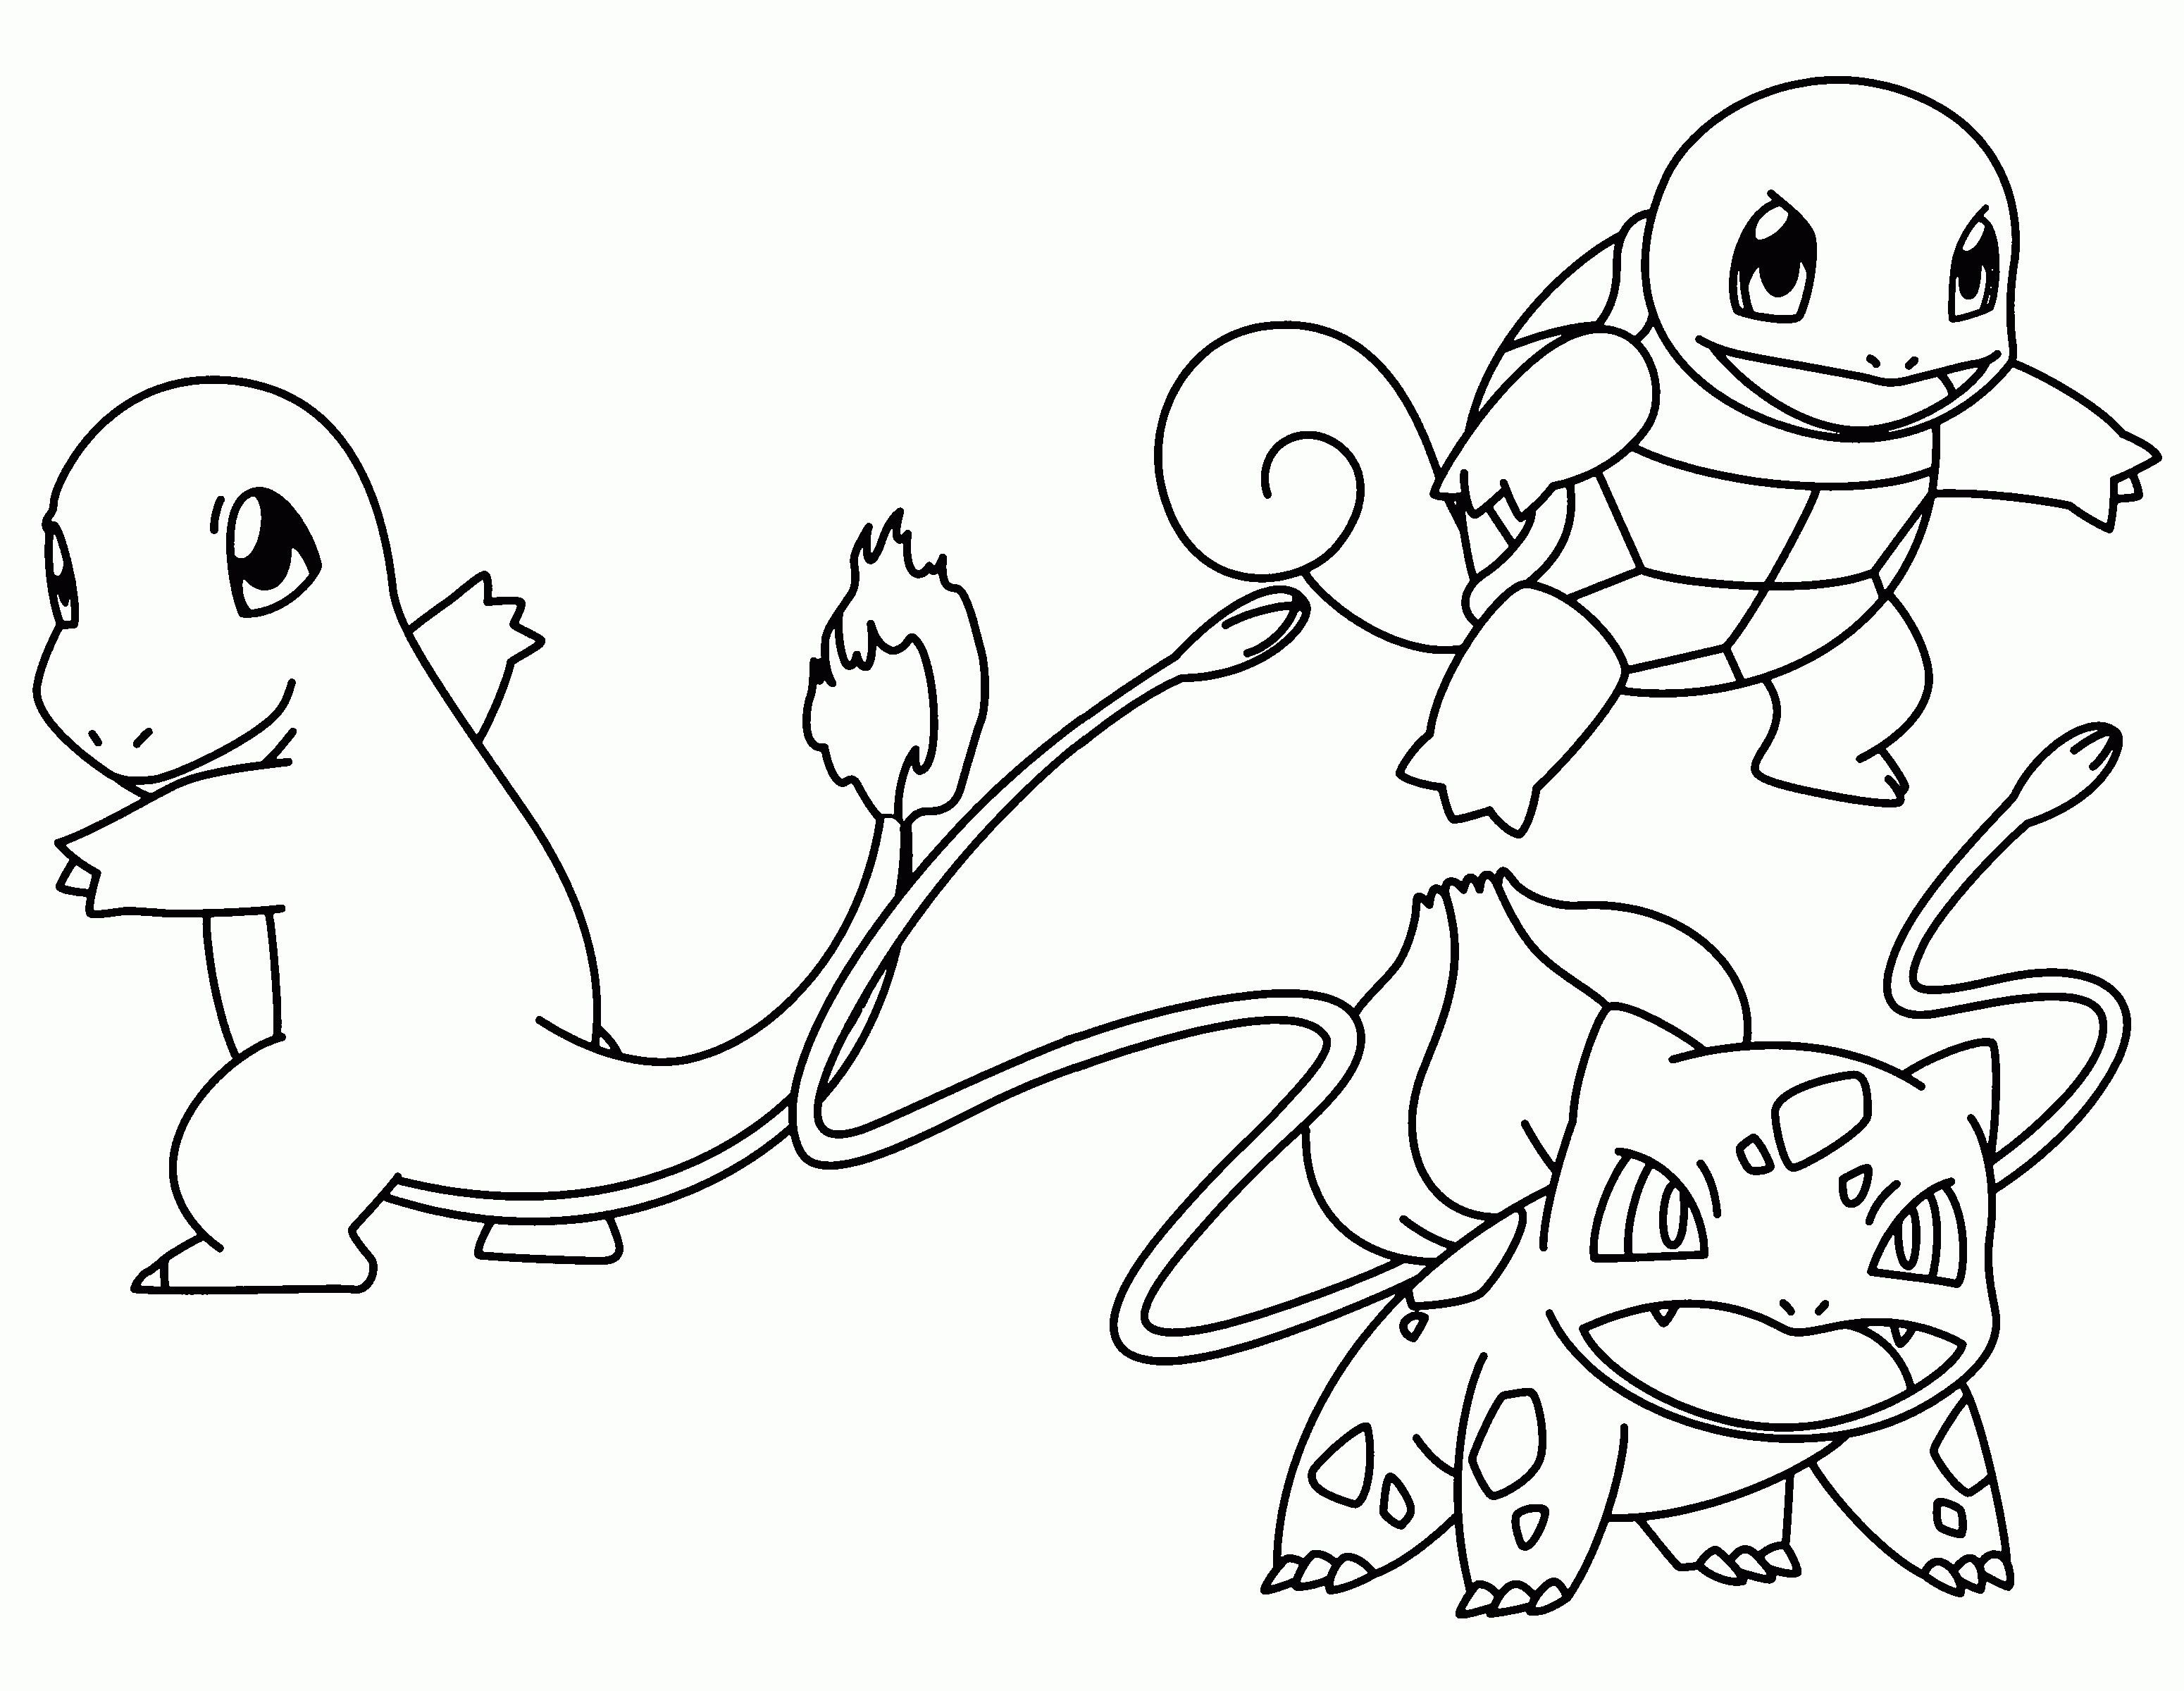 charmander-pokemon-coloring-pages-of-charmander-pokemon-coloring-pages Charmander Pokemon Coloring Pages Cartoon